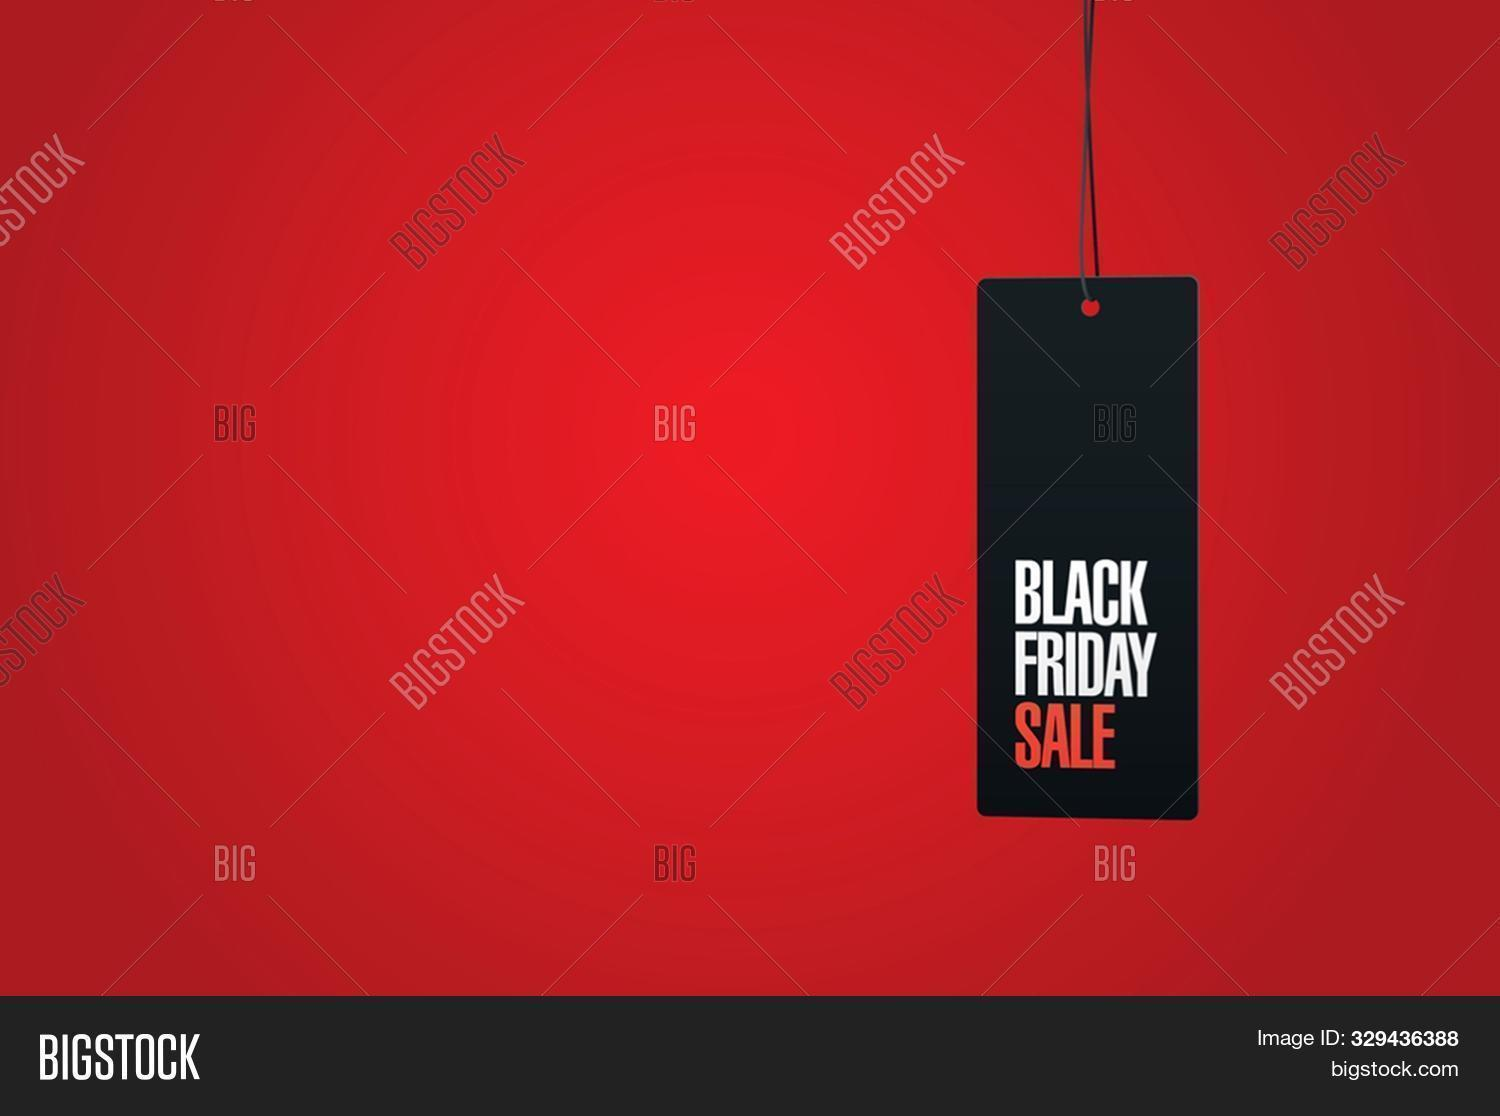 advertisement,advertising,background,banner,big,black,business,christmas,color,cyber,day,deal,design,discount,event,flyer,friday,glowing,holiday,illustration,label,light,market,neon,november,offer,poster,price,promo,retail,sale,season,shop,sign,special,store,super,symbol,tag,template,vector,web,weekend